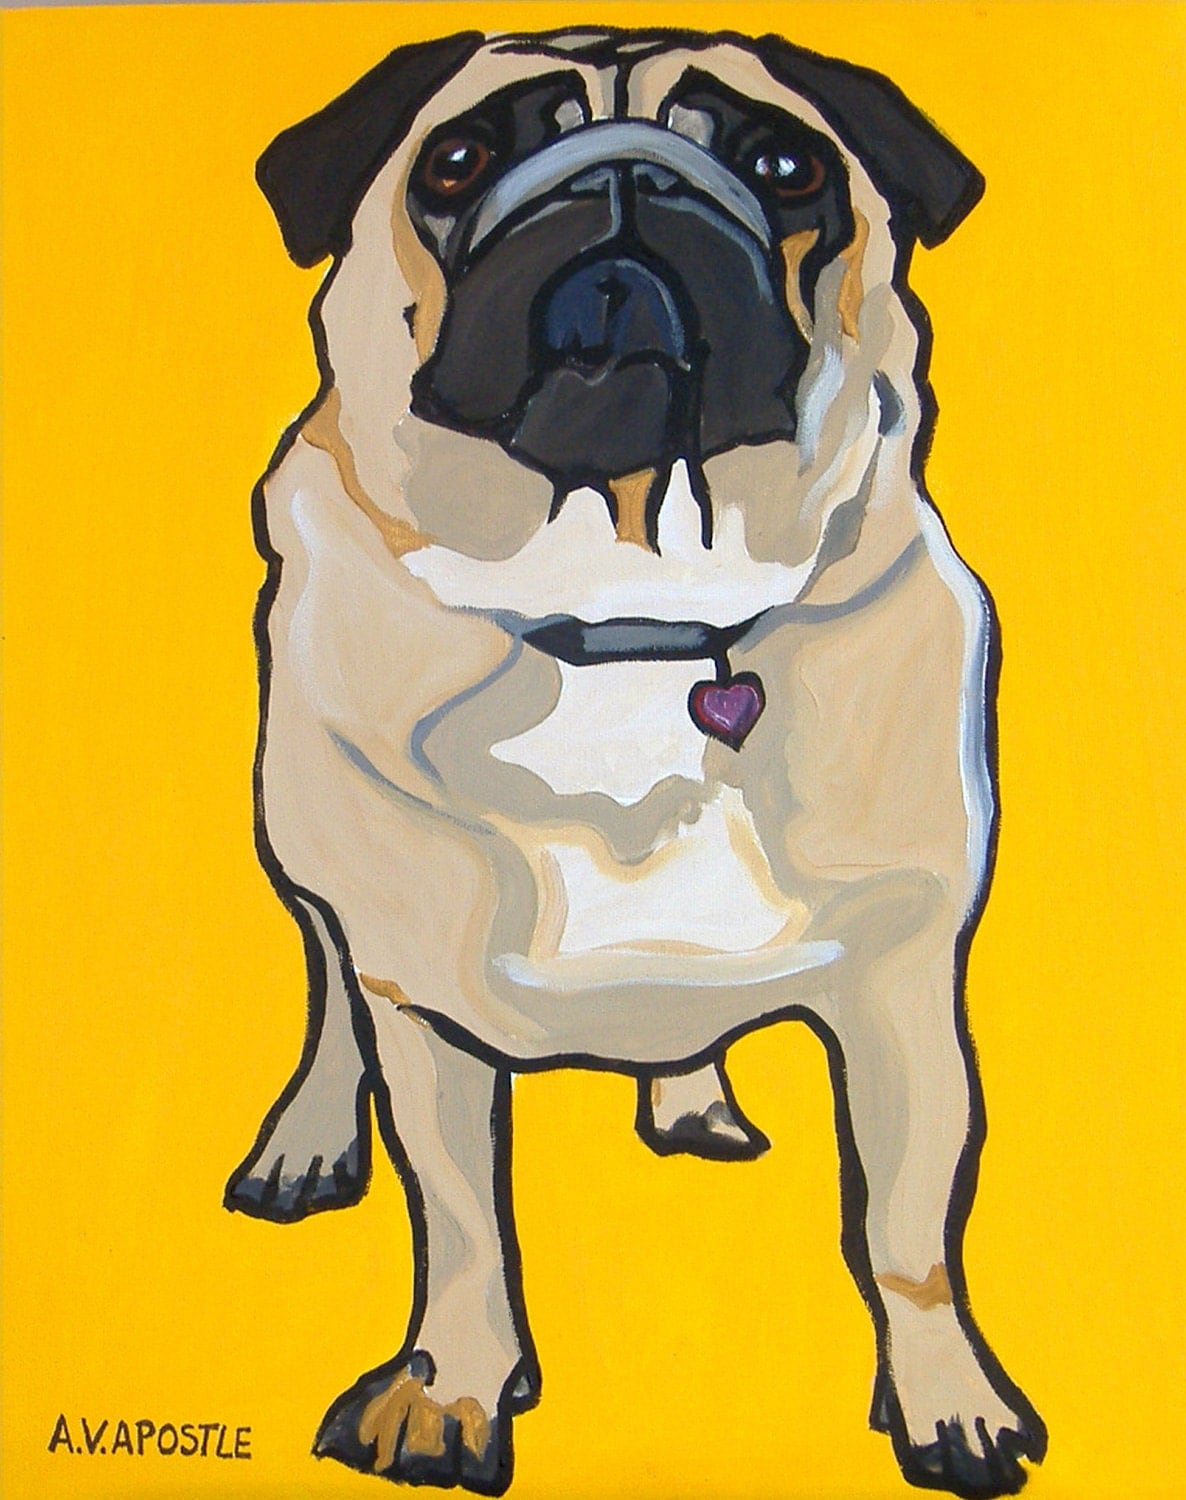 "POP ART PRINT- Pug Dog- Yellow Background- Signed by Artist A.V.Apostle- 8""x10"" - AVApostleDesign"